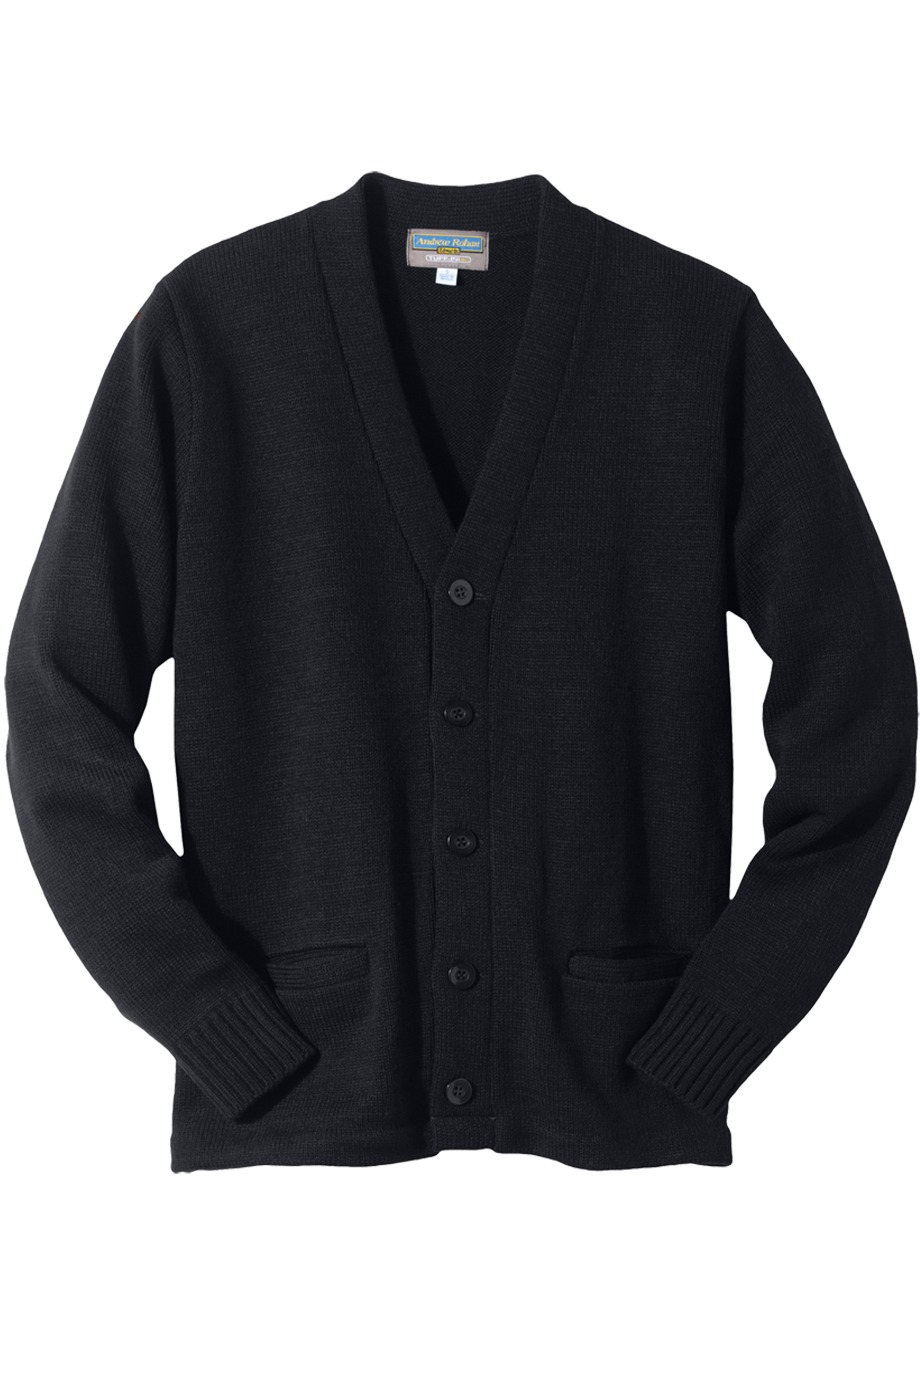 Edwards Garment 383 - Heavy Weight V-Neck Pocket Hemmed Cardigan